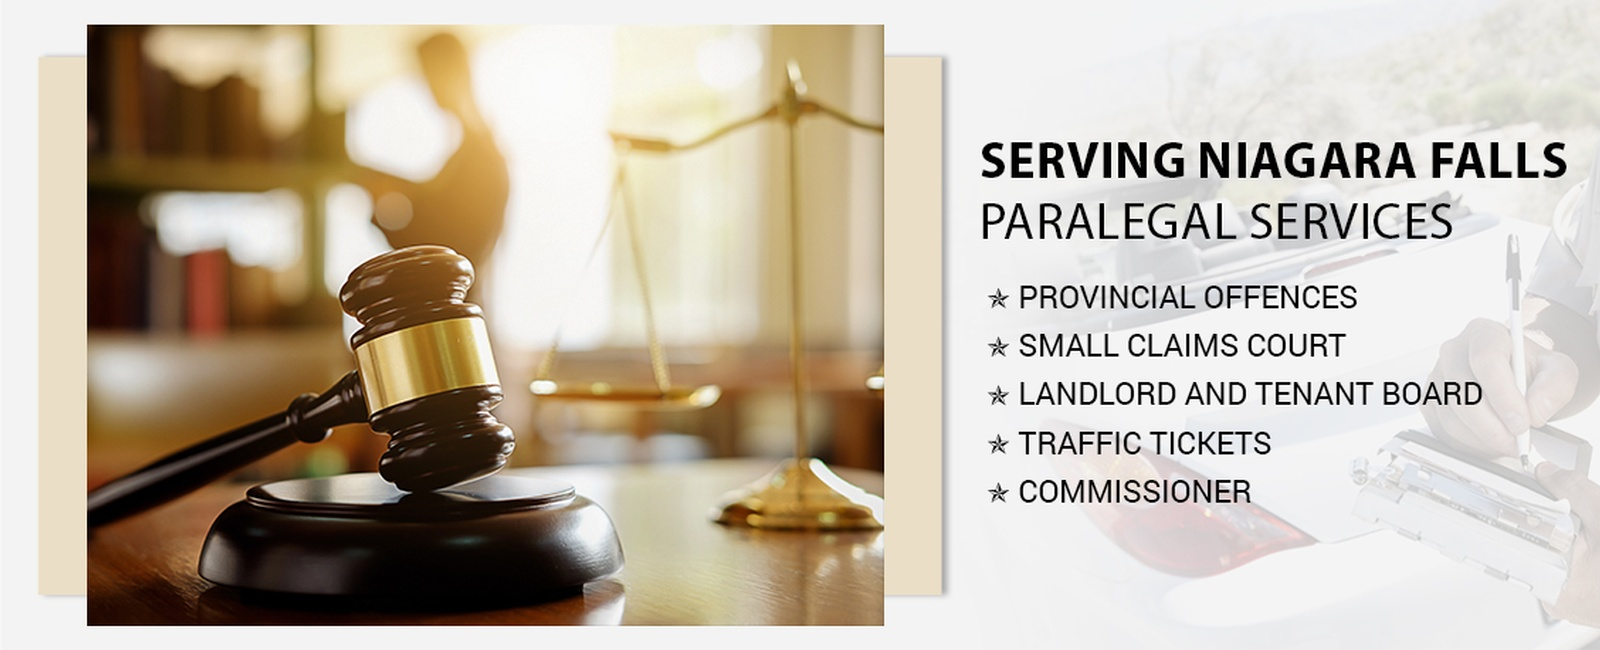 Paralegal services in Niagara Falls